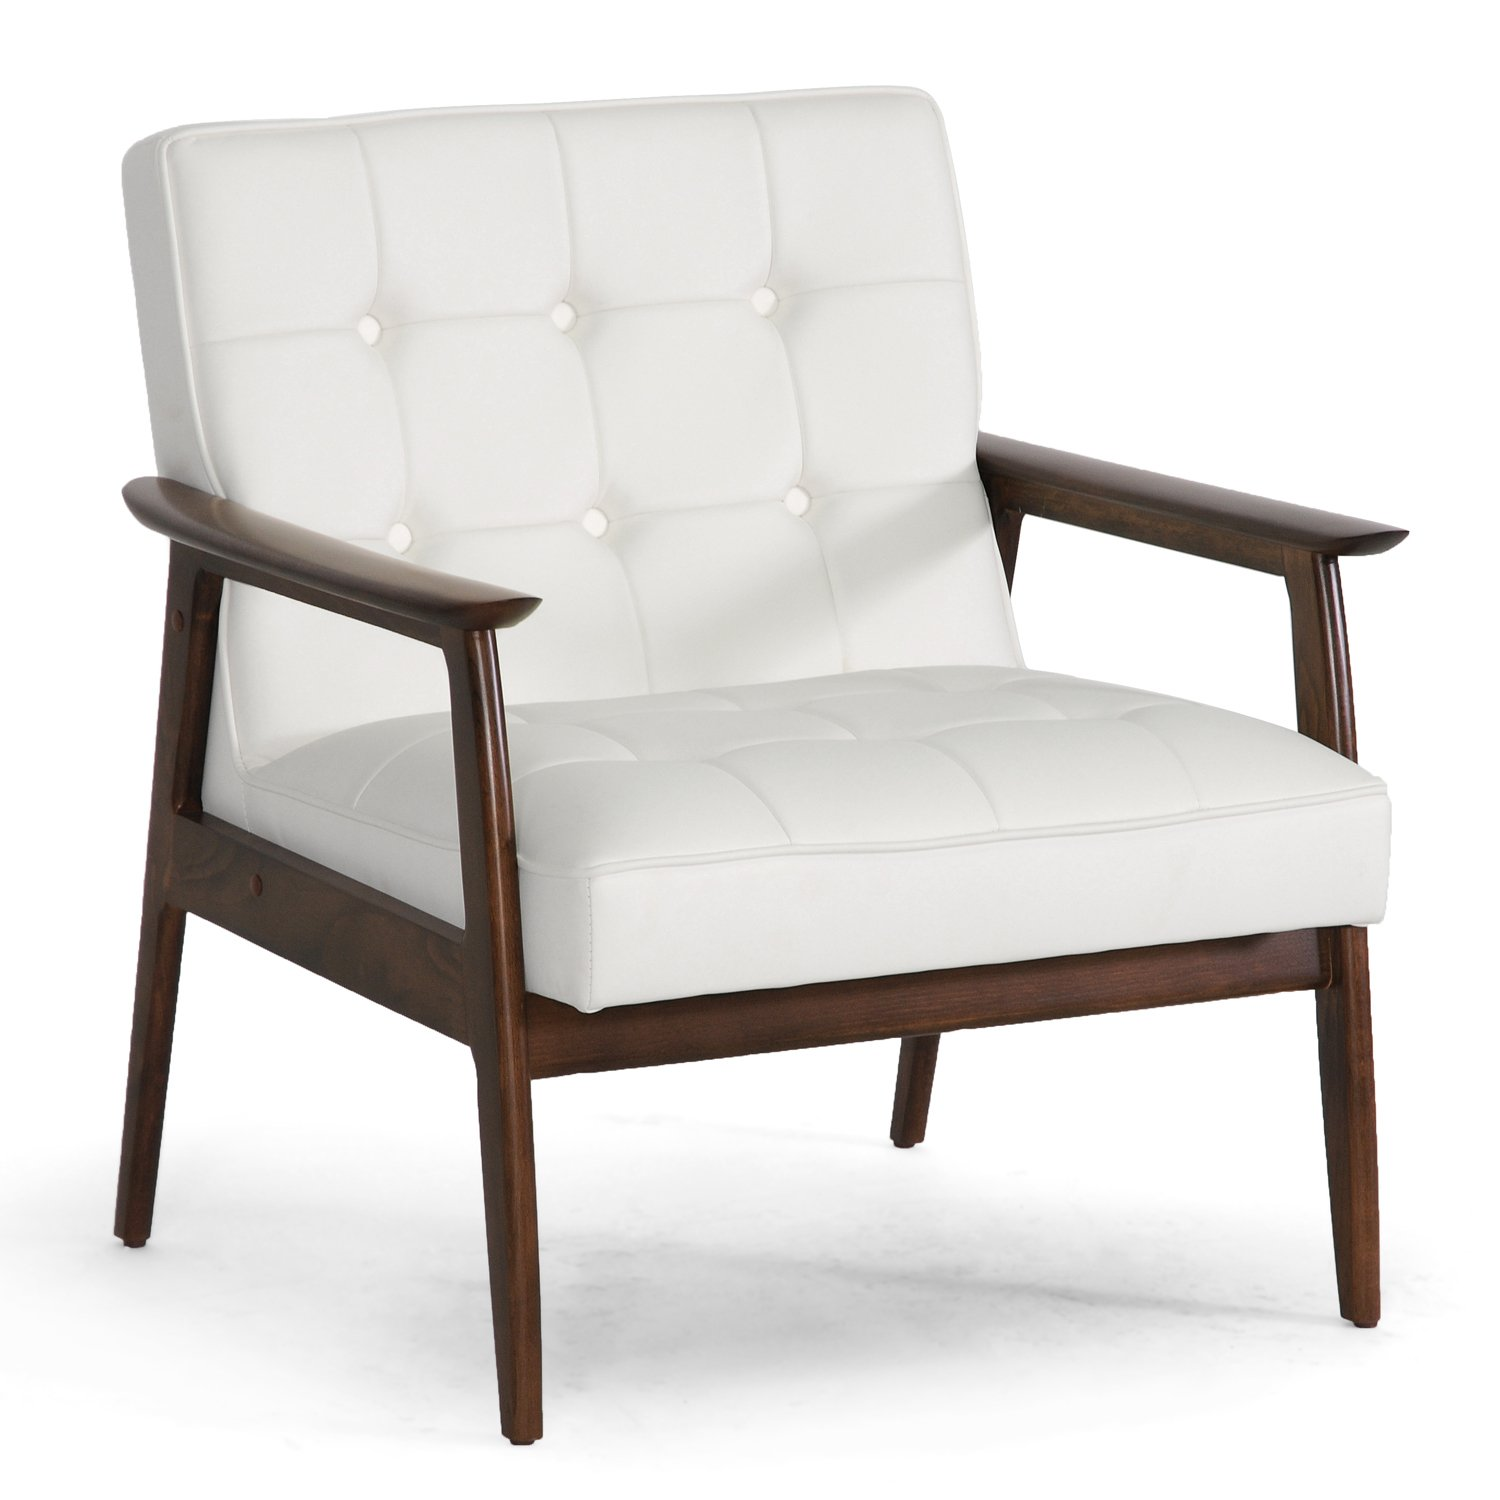 Merveilleux Amazon.com: Baxton Studio Stratham Mid Century Modern Club Chair, White:  Kitchen U0026 Dining